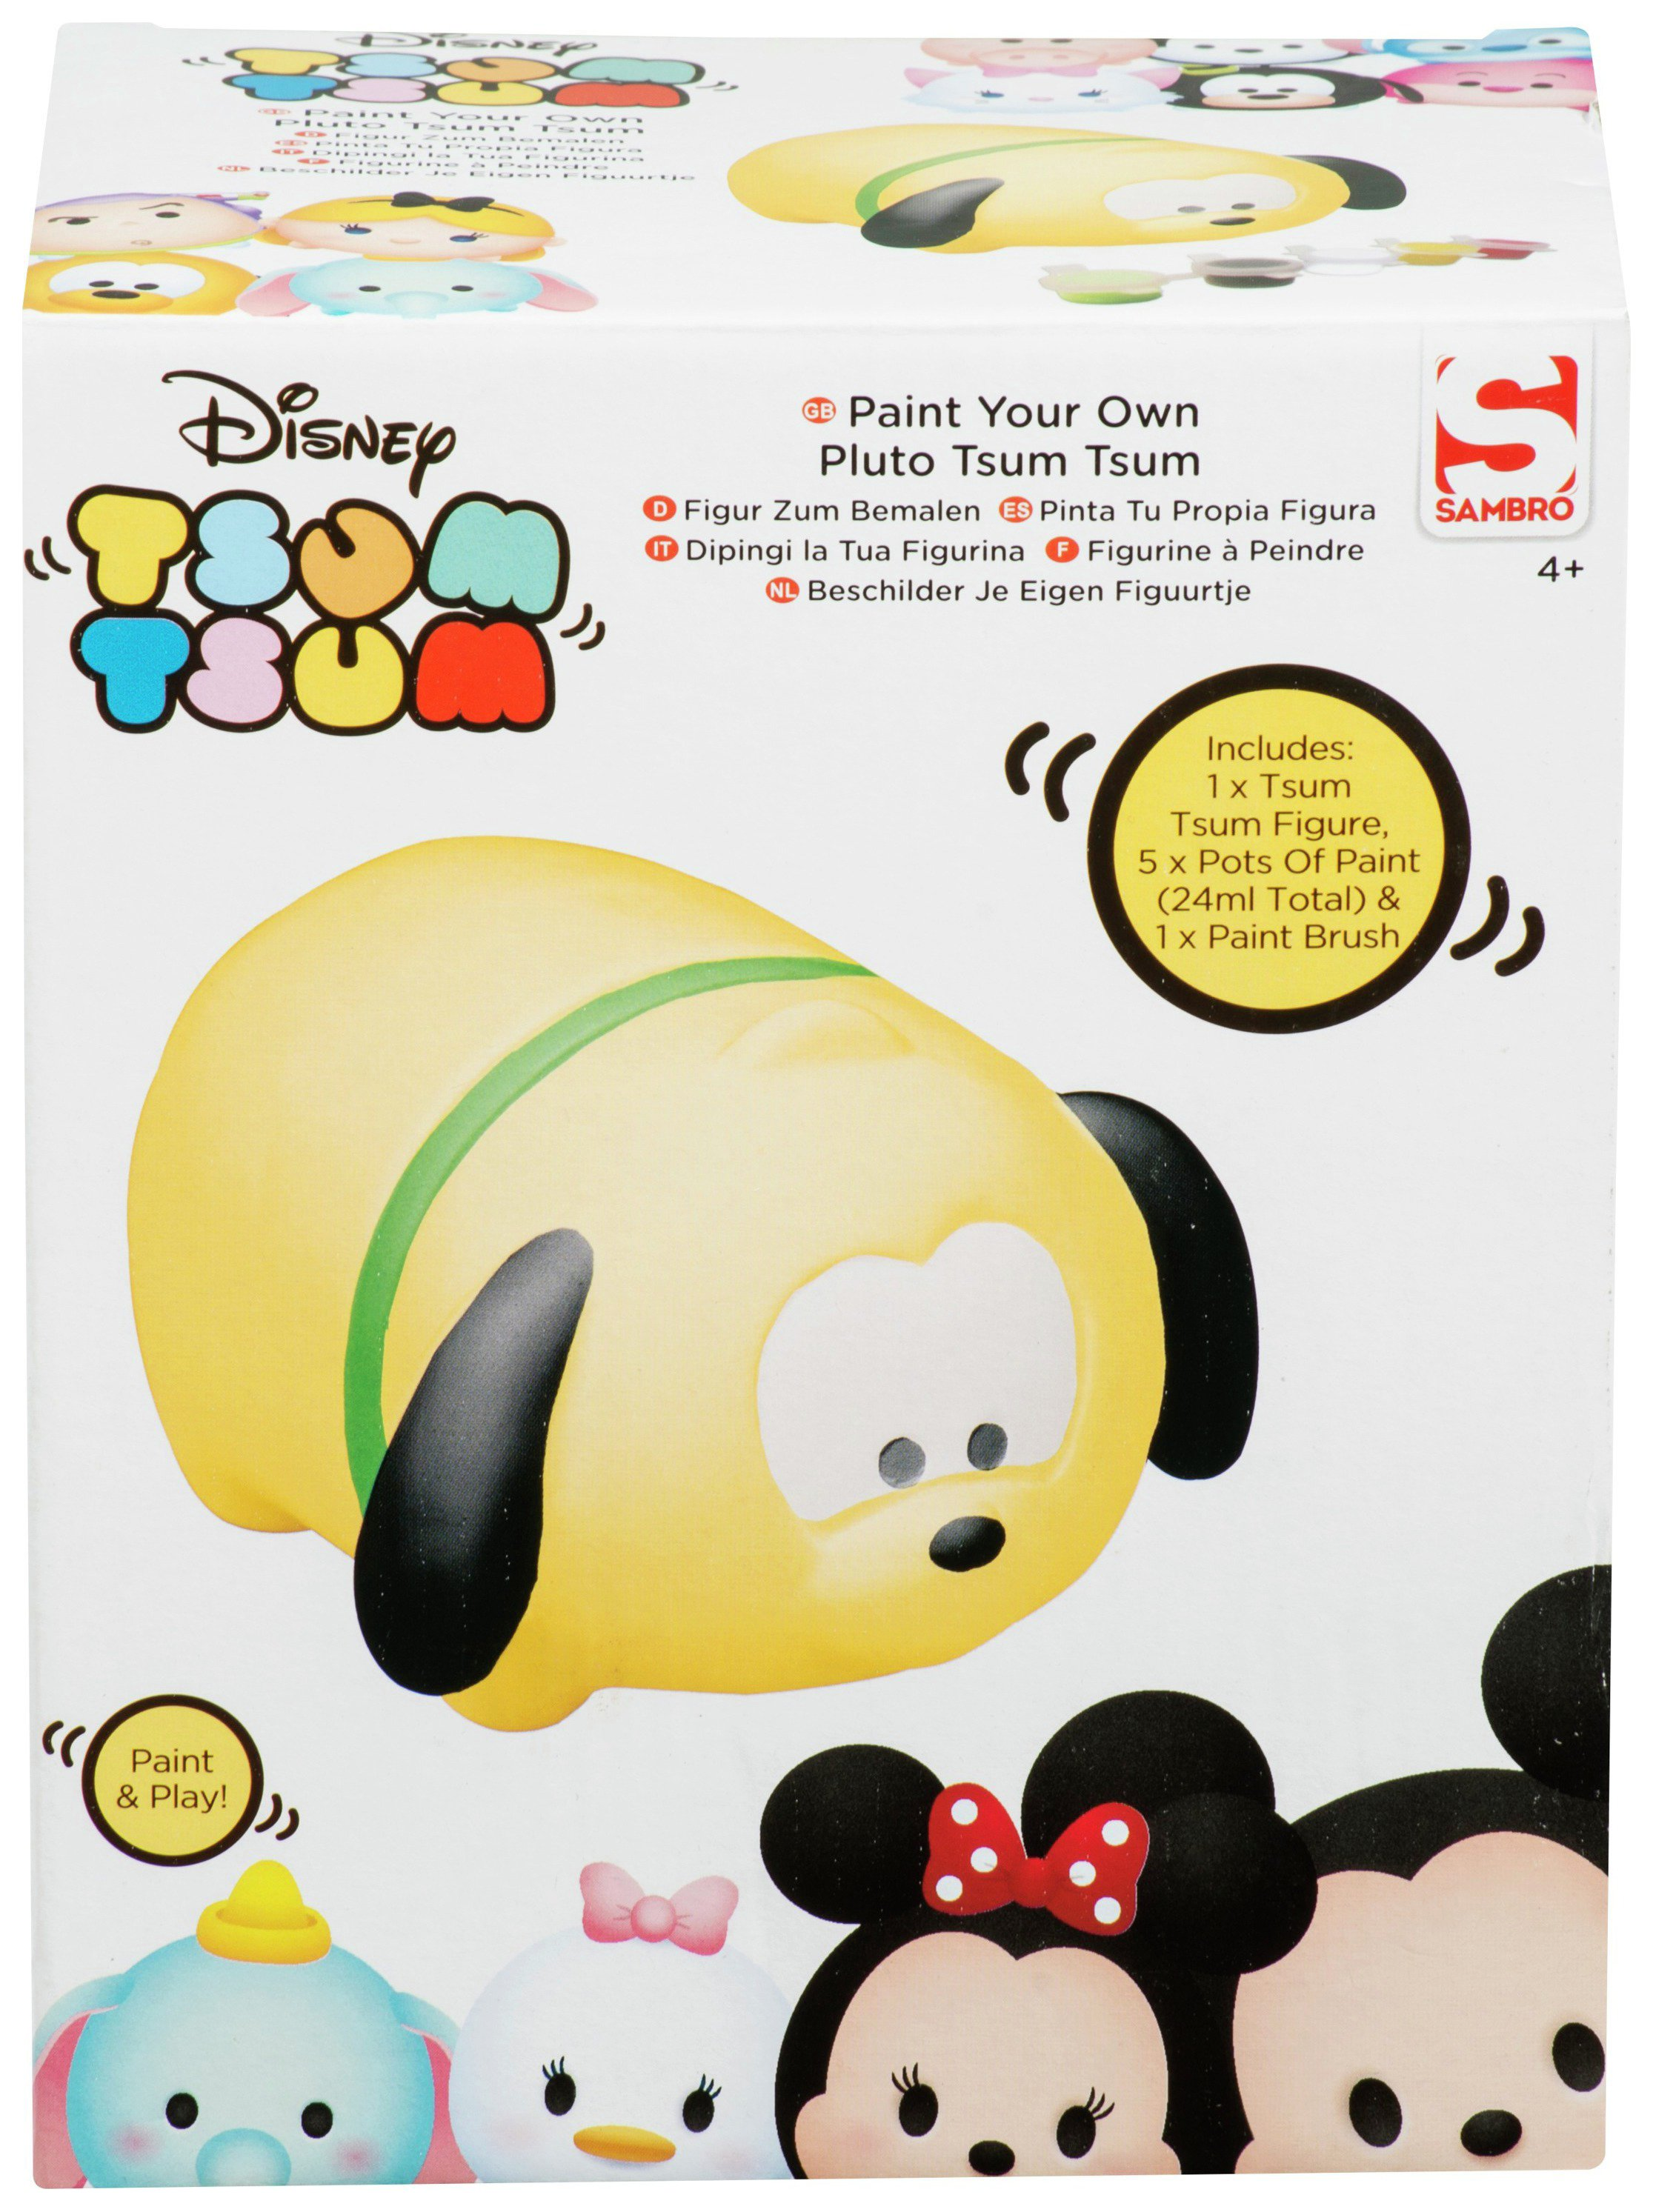 tsum tsum paint your own figure.